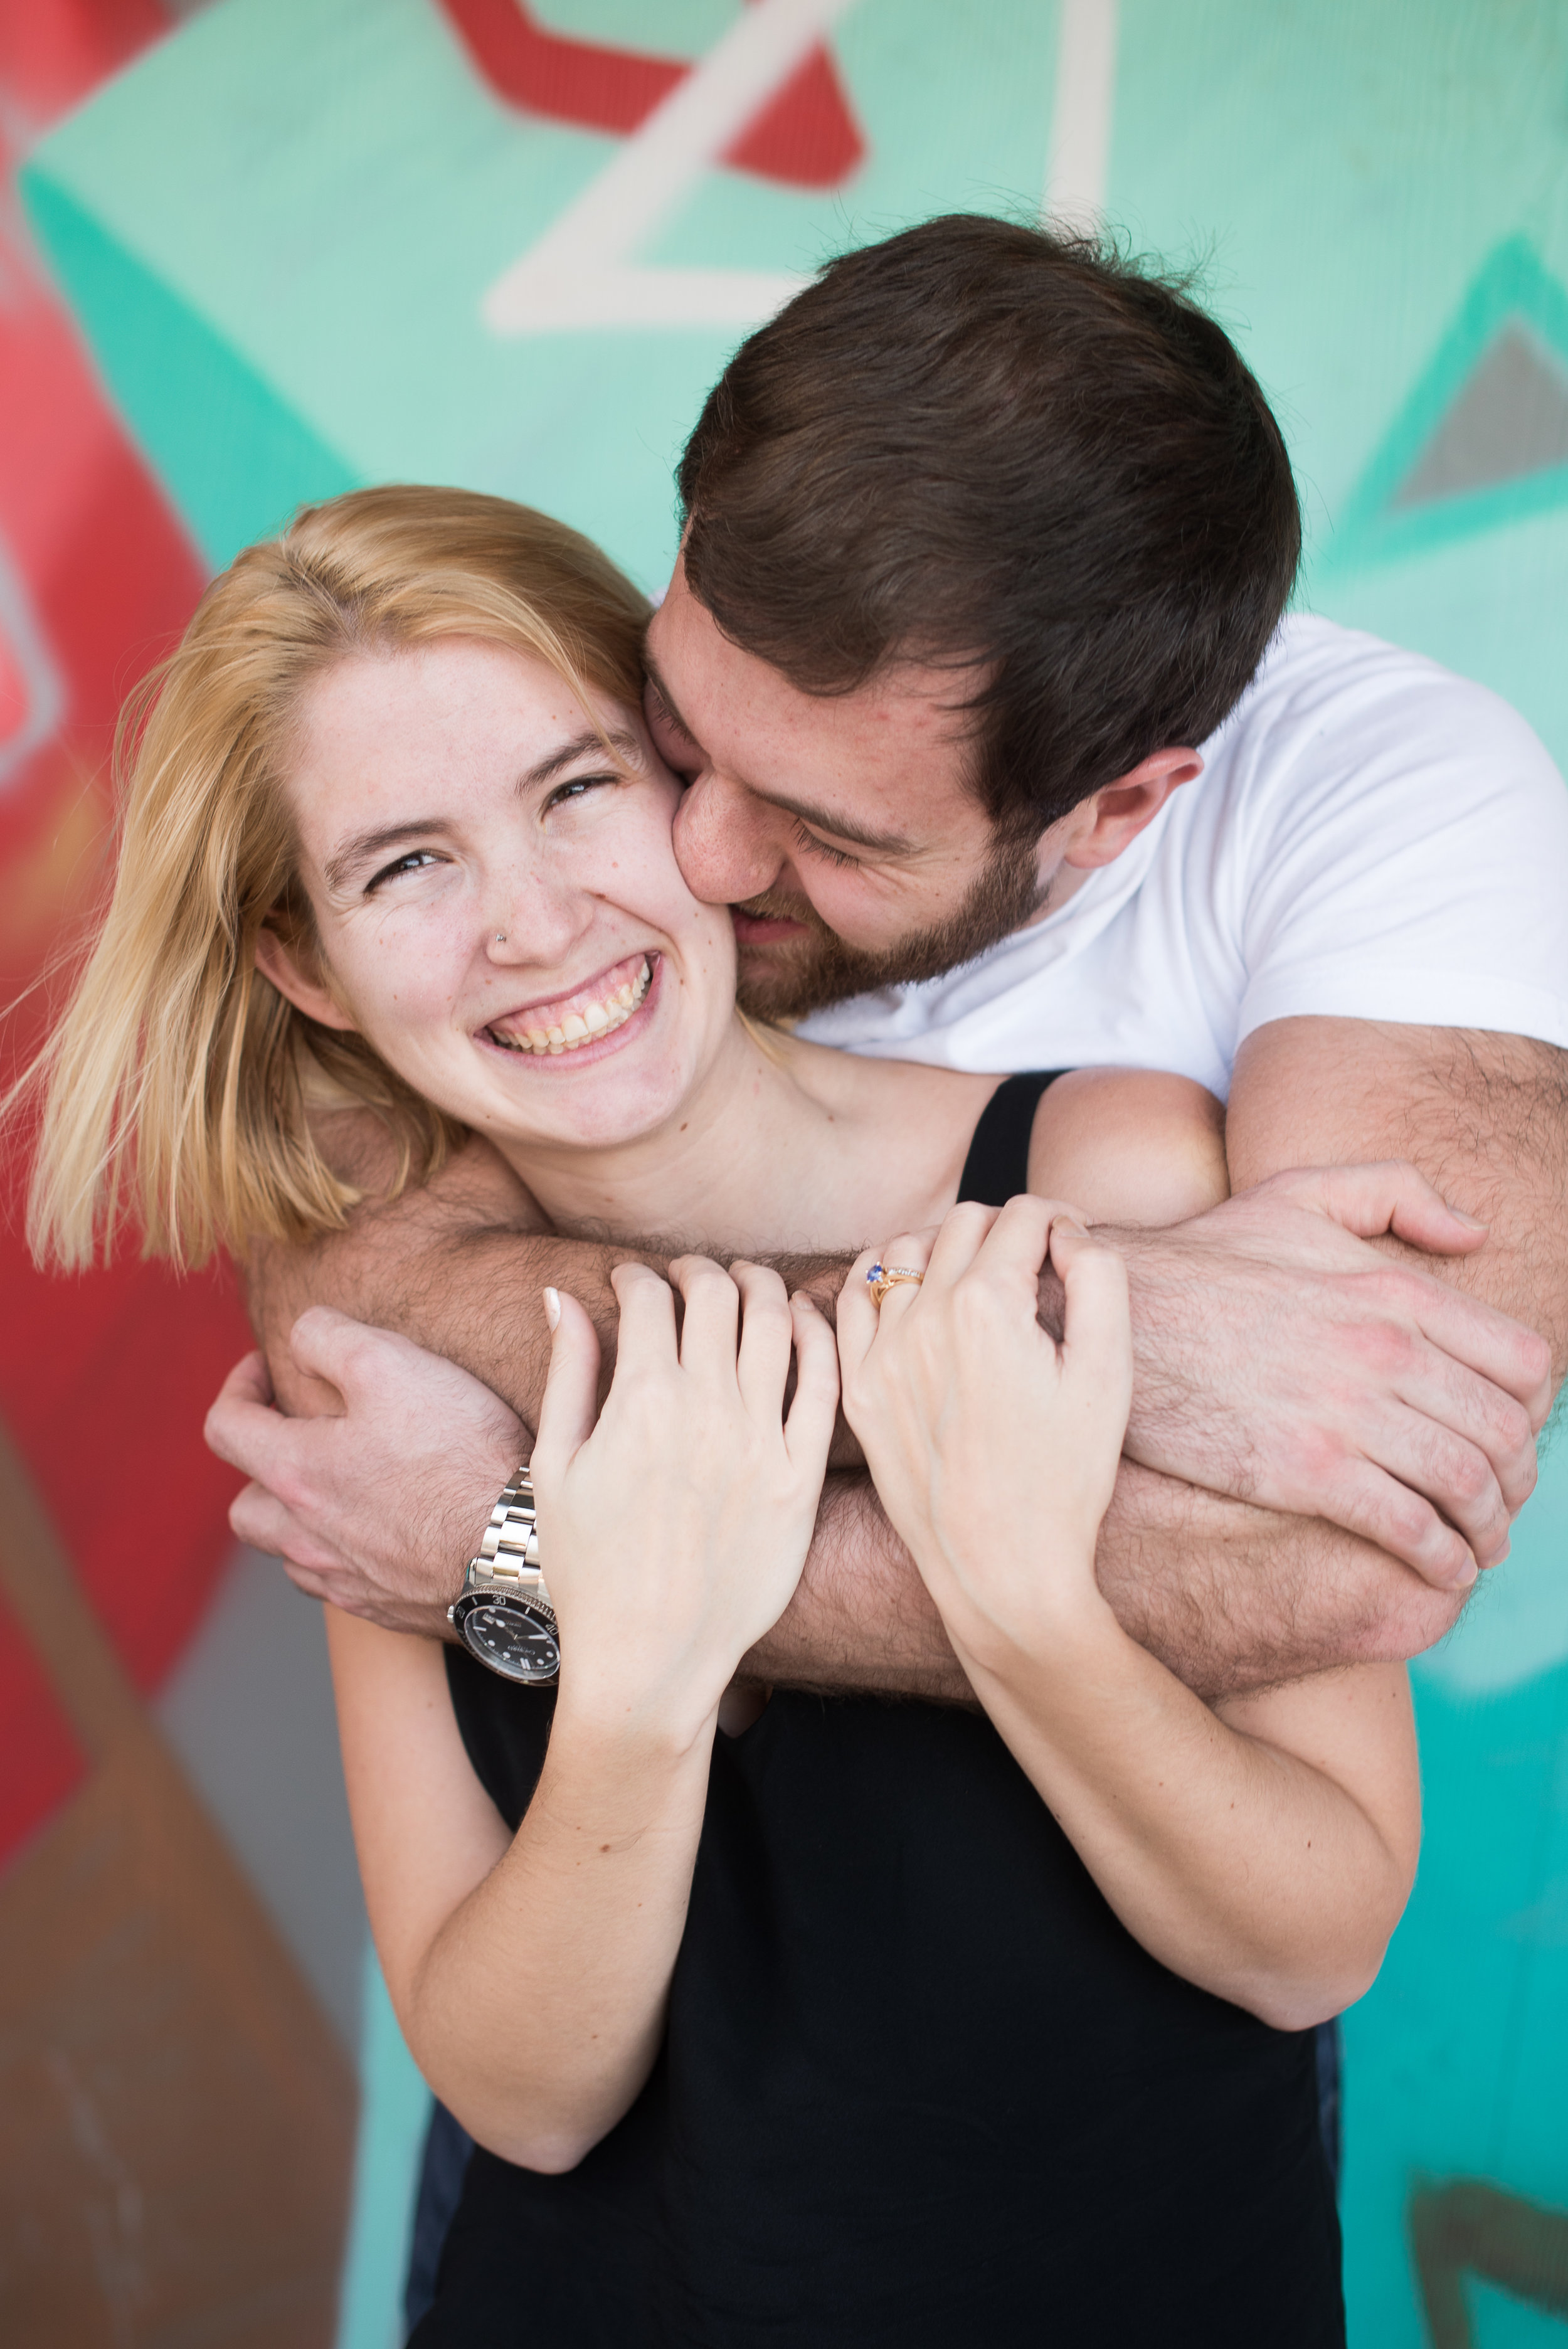 Torrie and Nick Engagement Session at Vic Mathias Shores Austin Texas-22.JPG